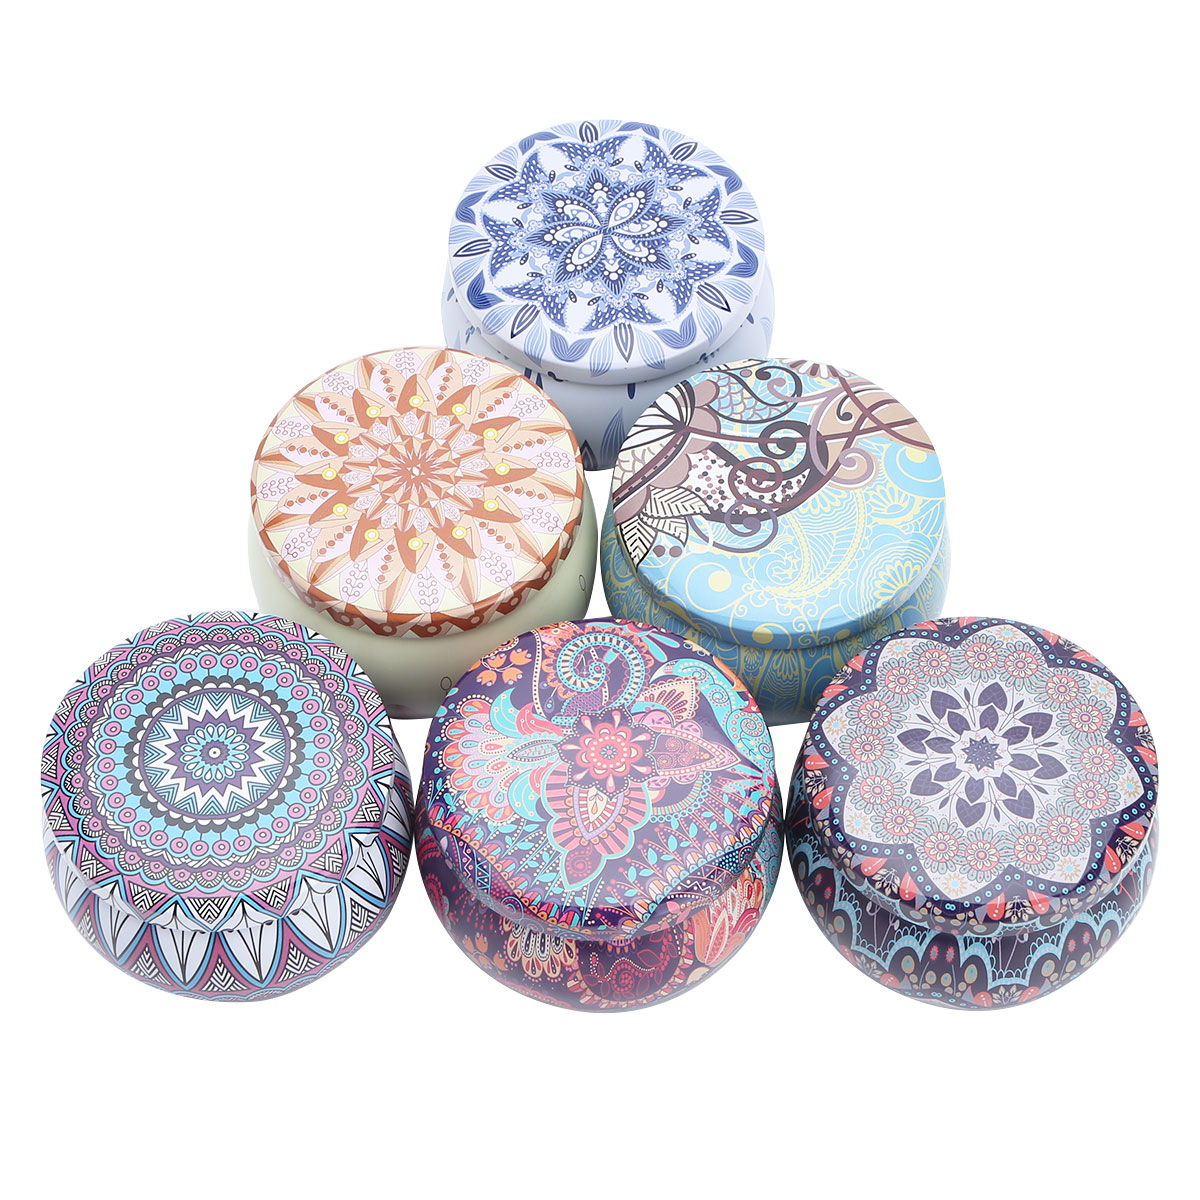 6 Vintage Flower Print Metal Tin Jar Candle Making Containers Storage Case w//Lid